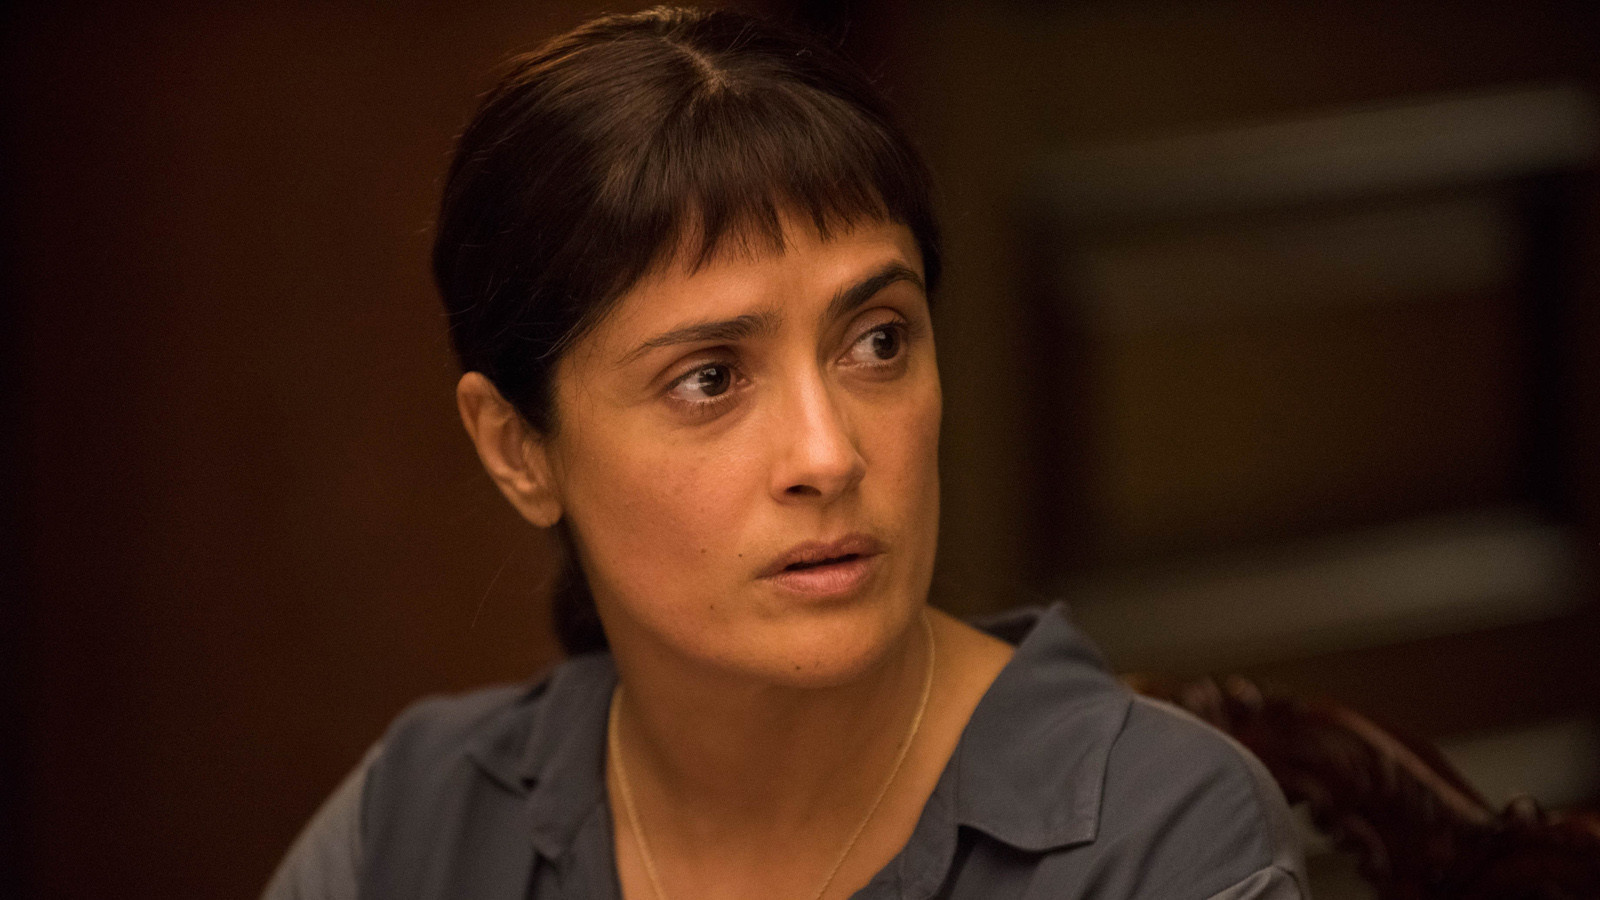 Beatriz At Dinner Review  Salma Hayek shines in the delicious Trump era satire